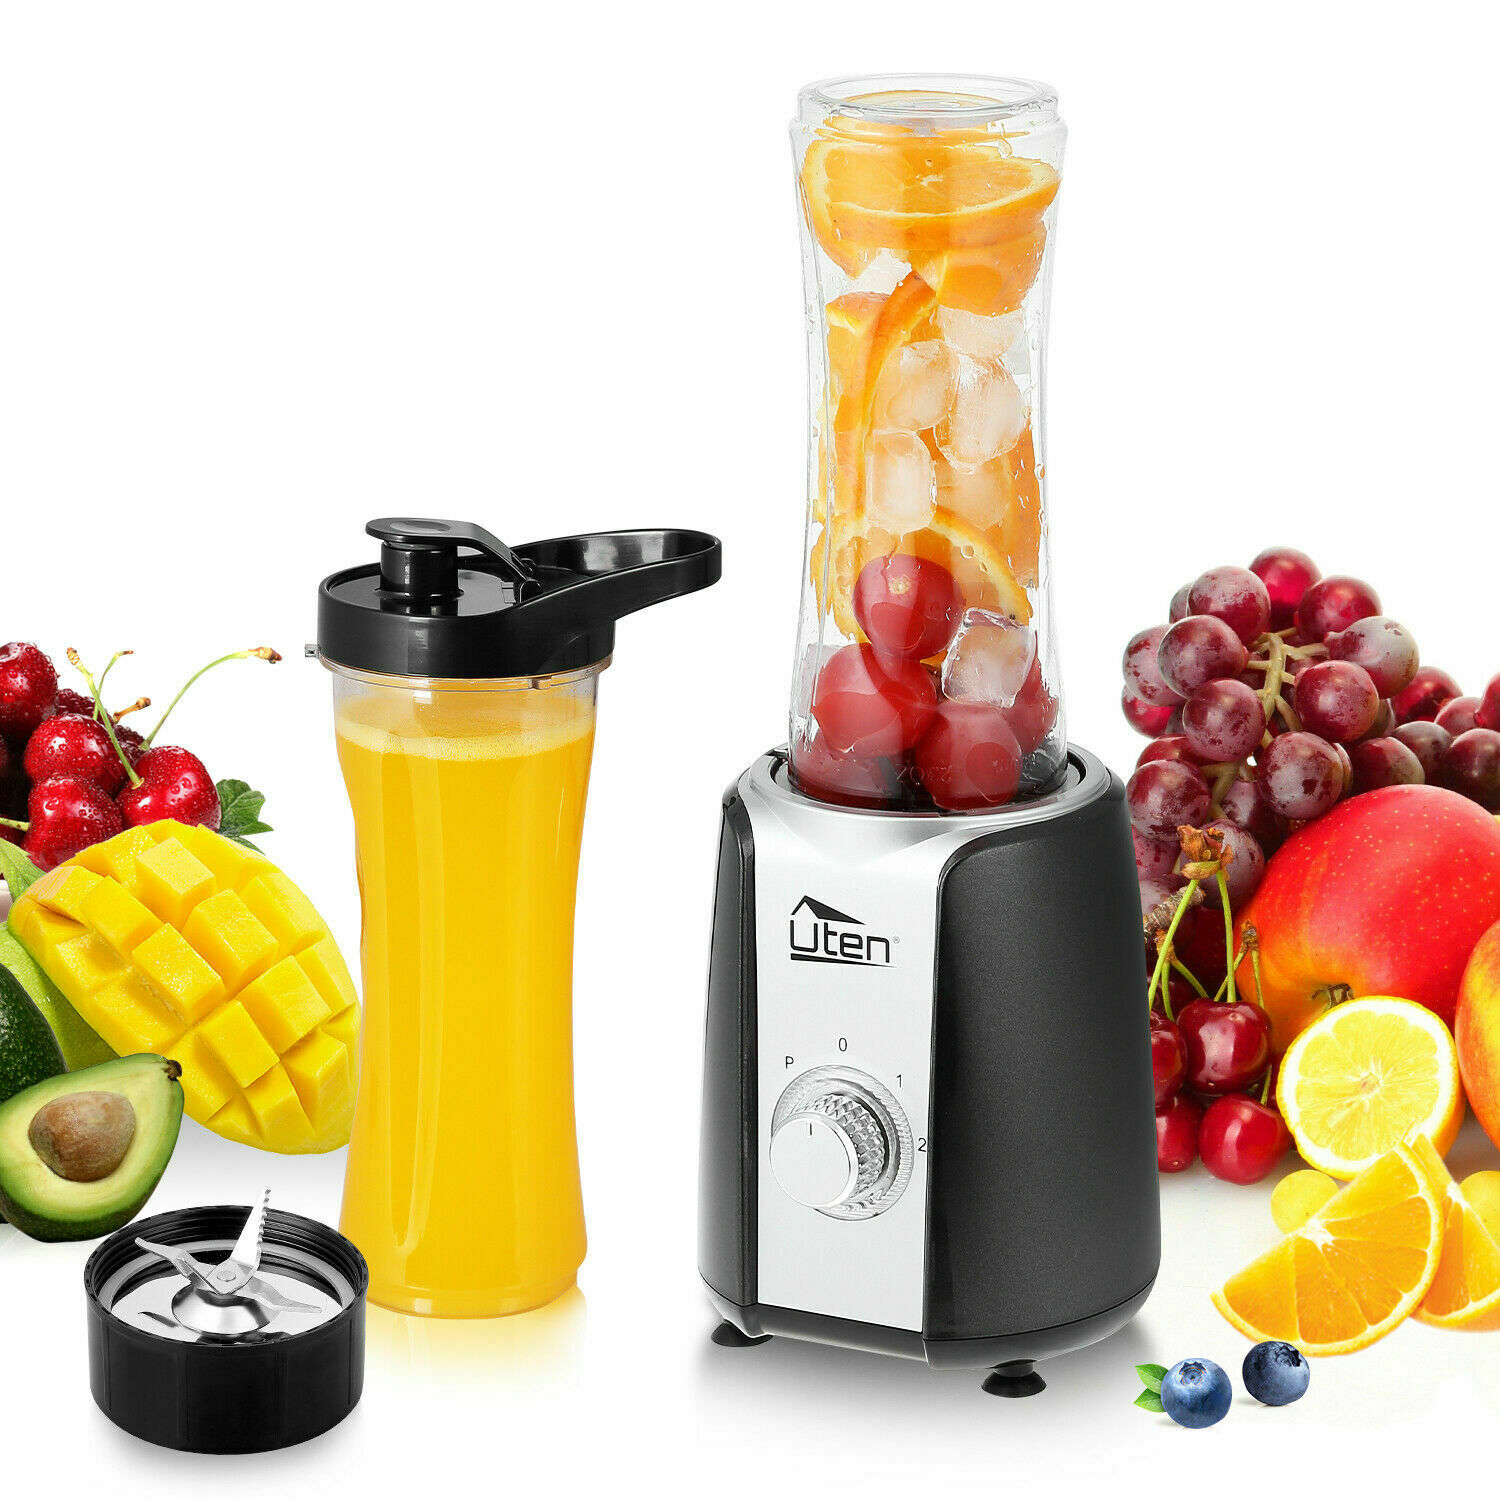 Smoothie Maker Oder Standmixer